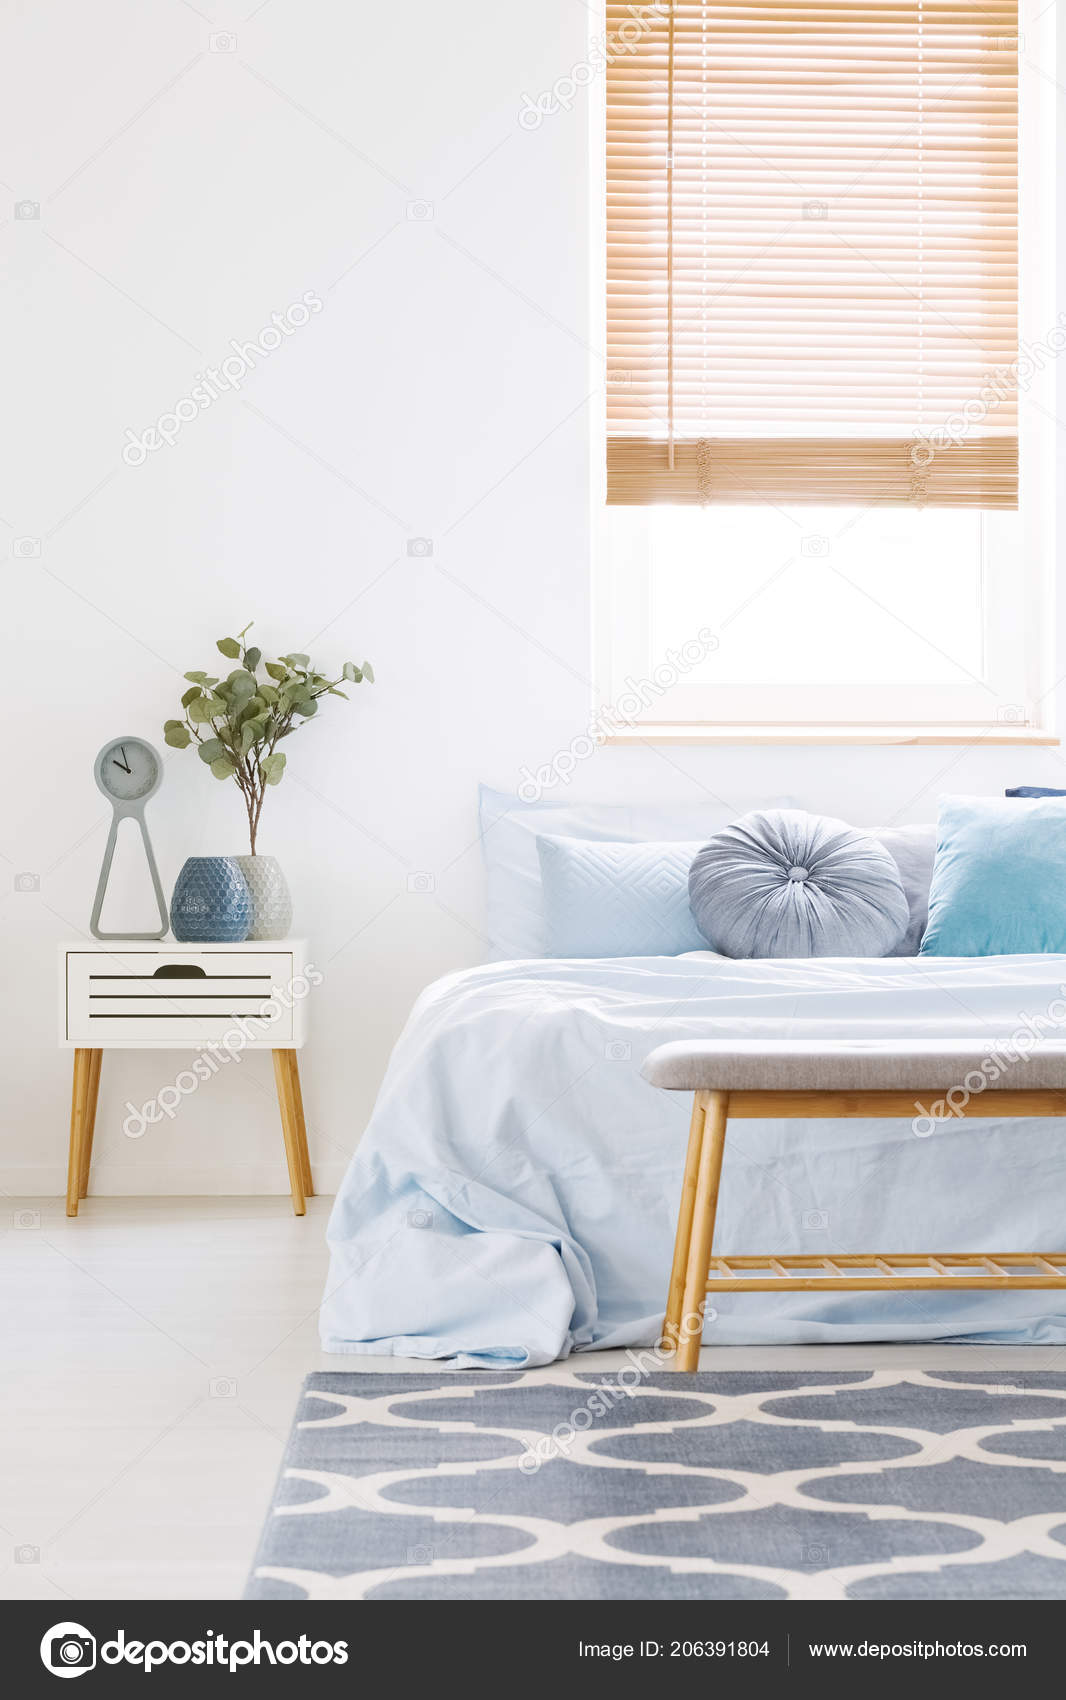 Genial Window Wooden Blinds White Bedroom Interior Bed Light Blue Bedclothes U2014  Stock Photo